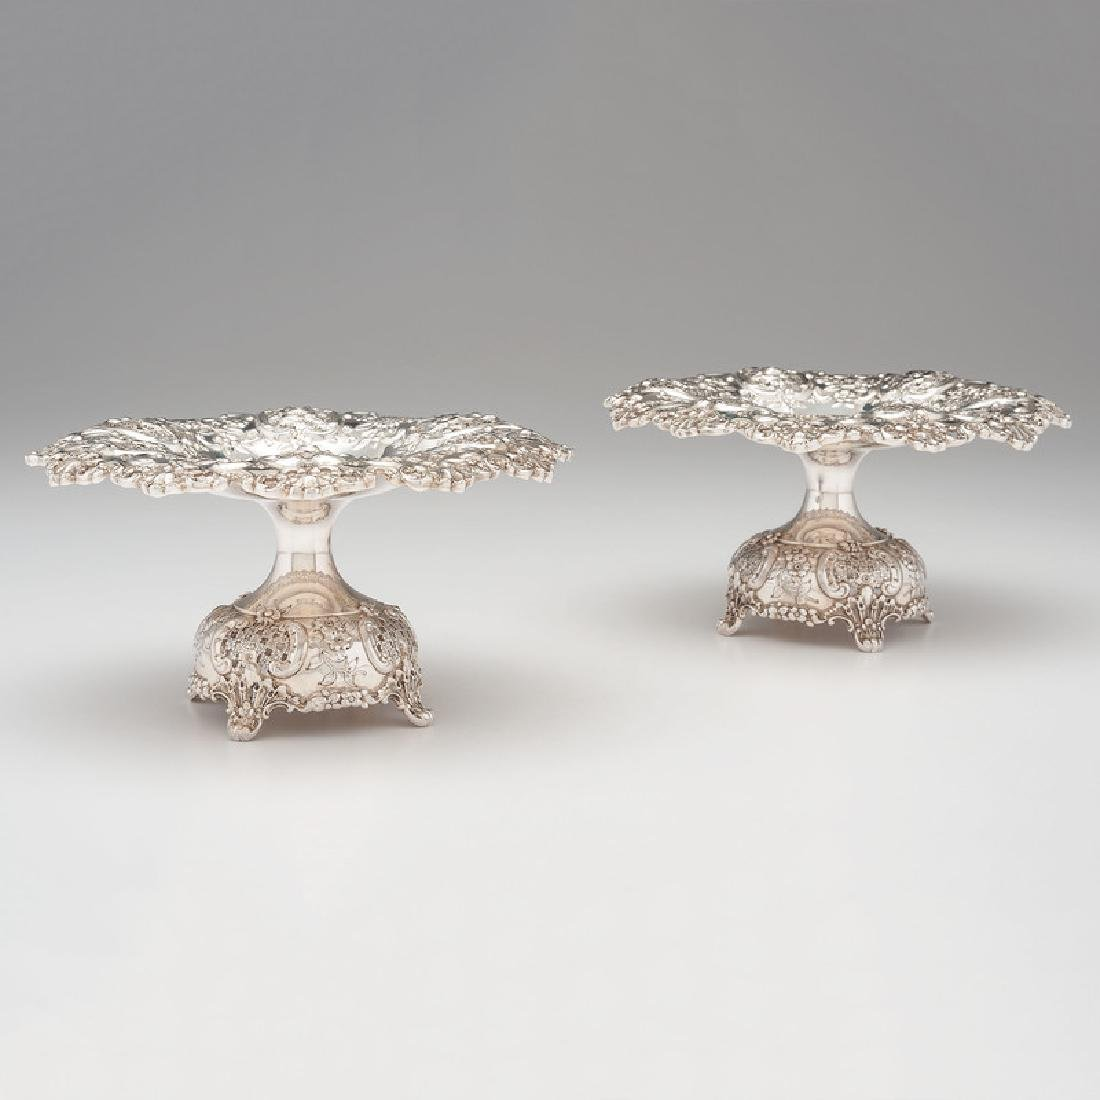 Tiffany & Co. Sterling Silver Compotes